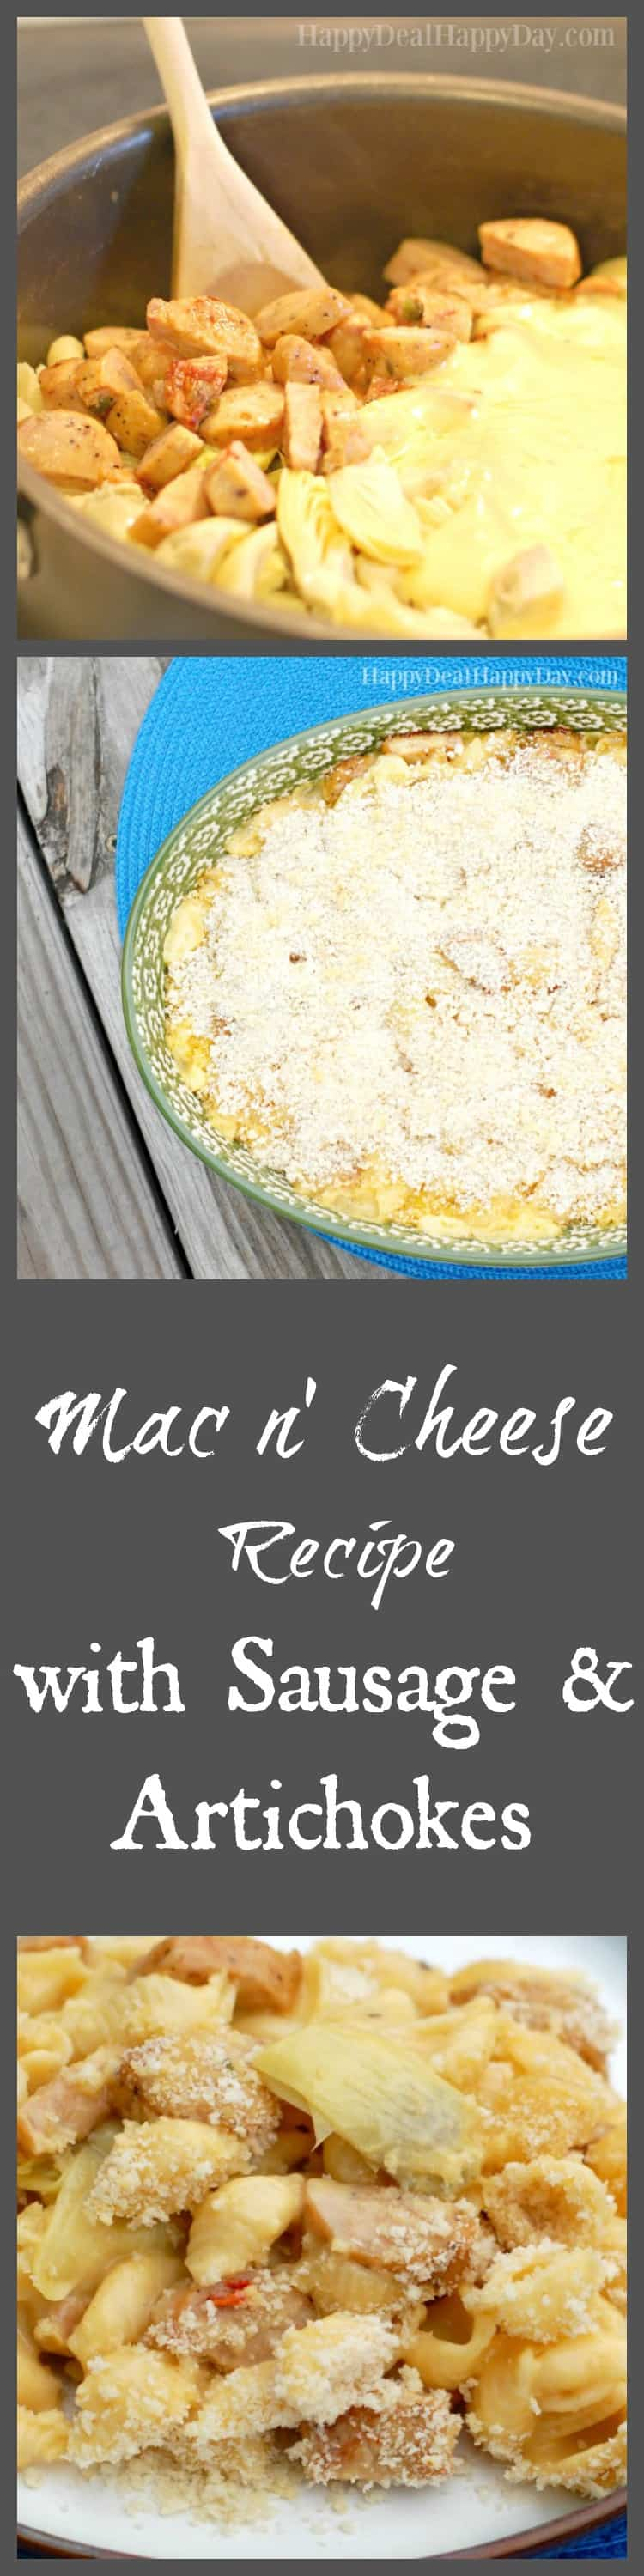 Mac N' Cheese Recipe with Sausage and Artichokes -seriously the BEST one pot comfort food mac n' cheese recipe! So so delicious - gotta pin this one!